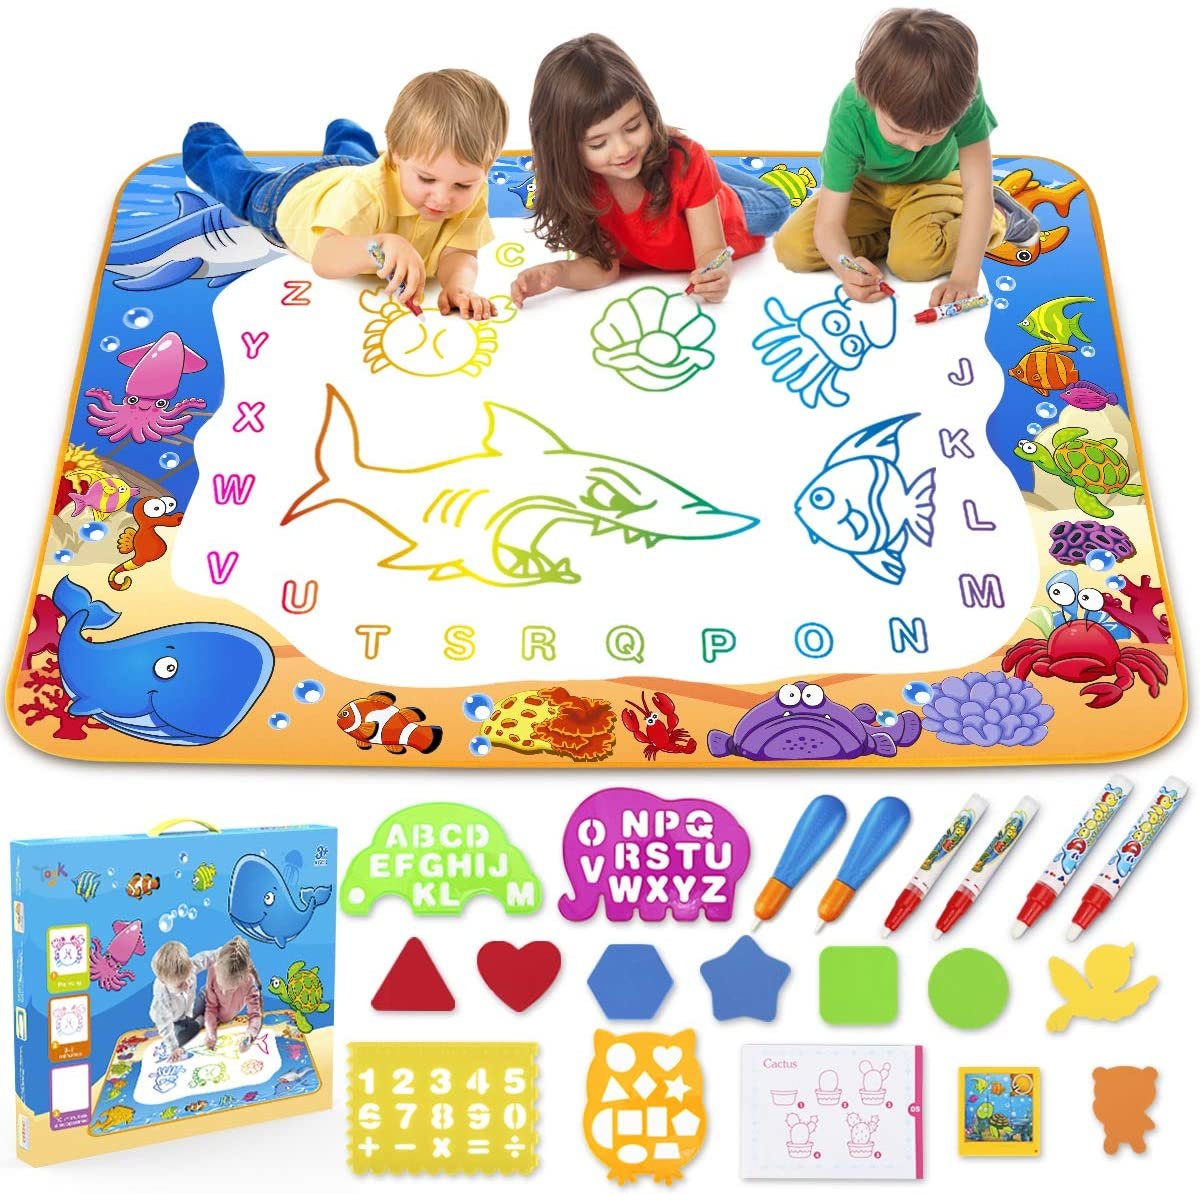 Review of Toyk Aqua Magic Mat - Kids Painting Writing Doodle Board Toy